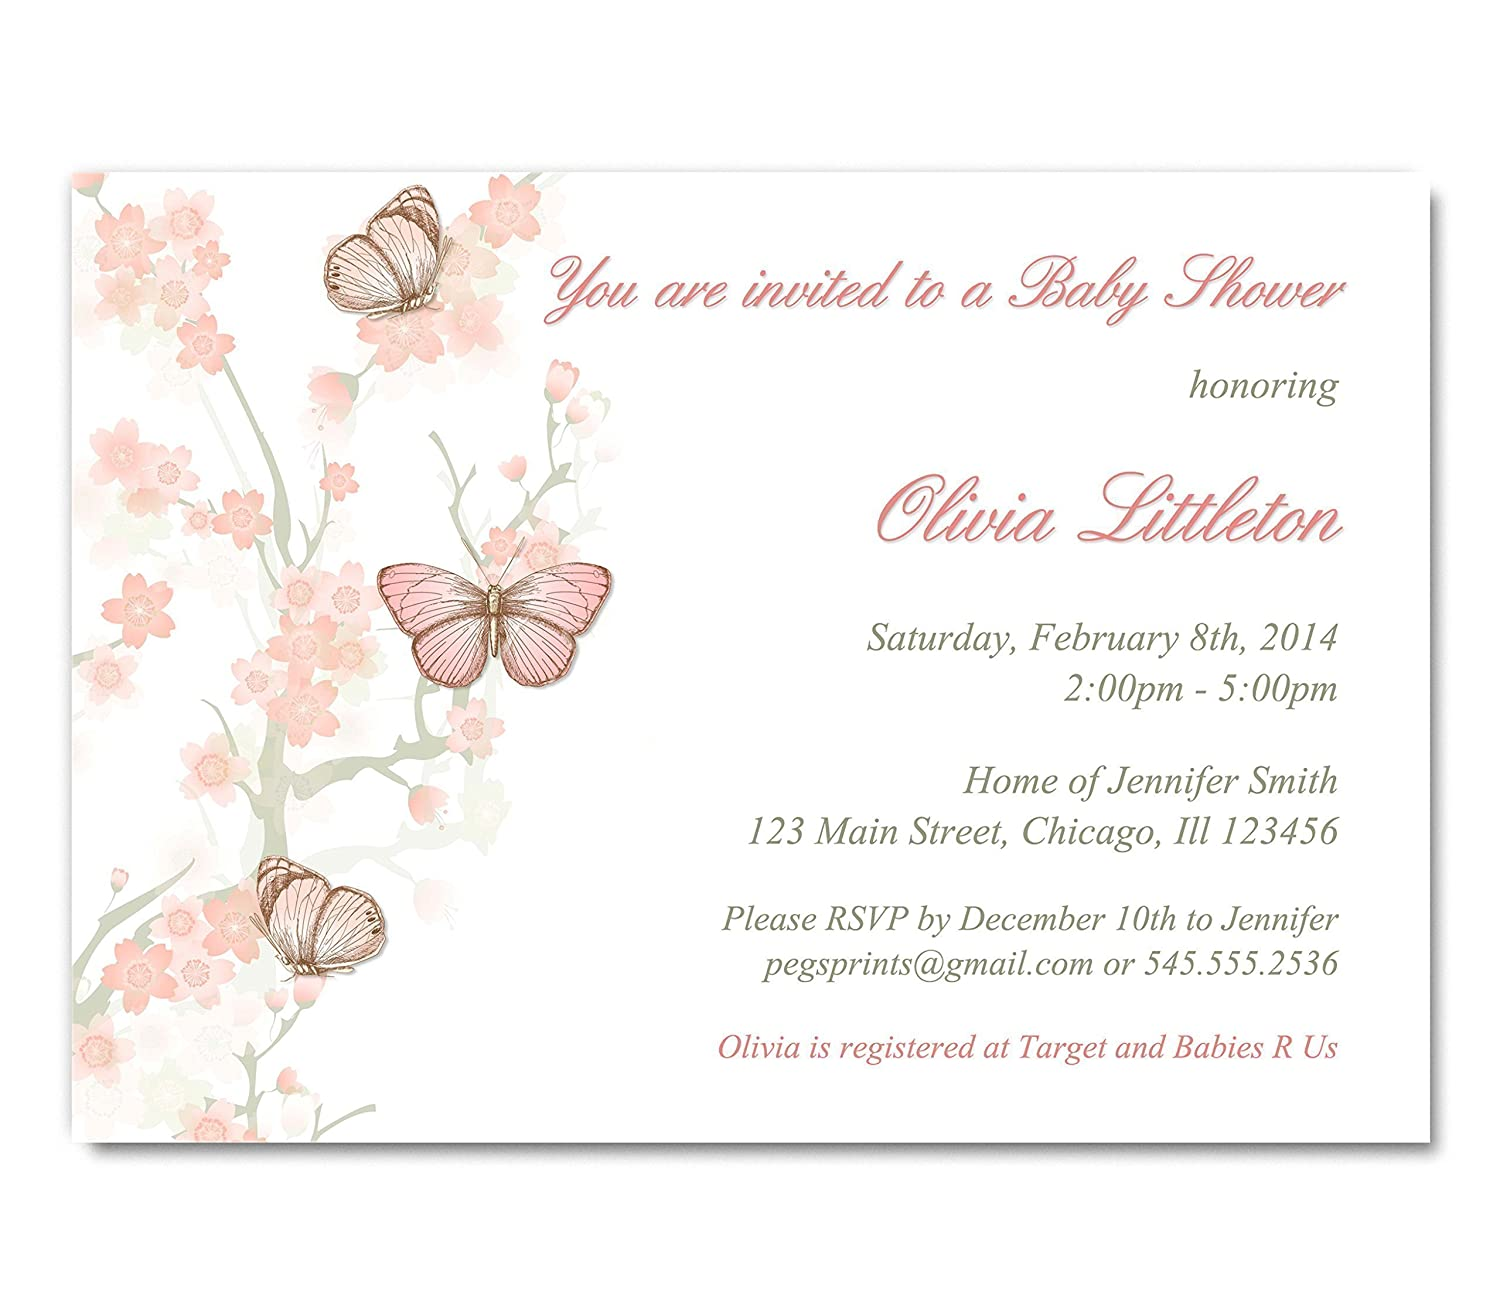 Amazon.com: Butterfly Baby Shower Invitation Girl - Butterfly Baby ...